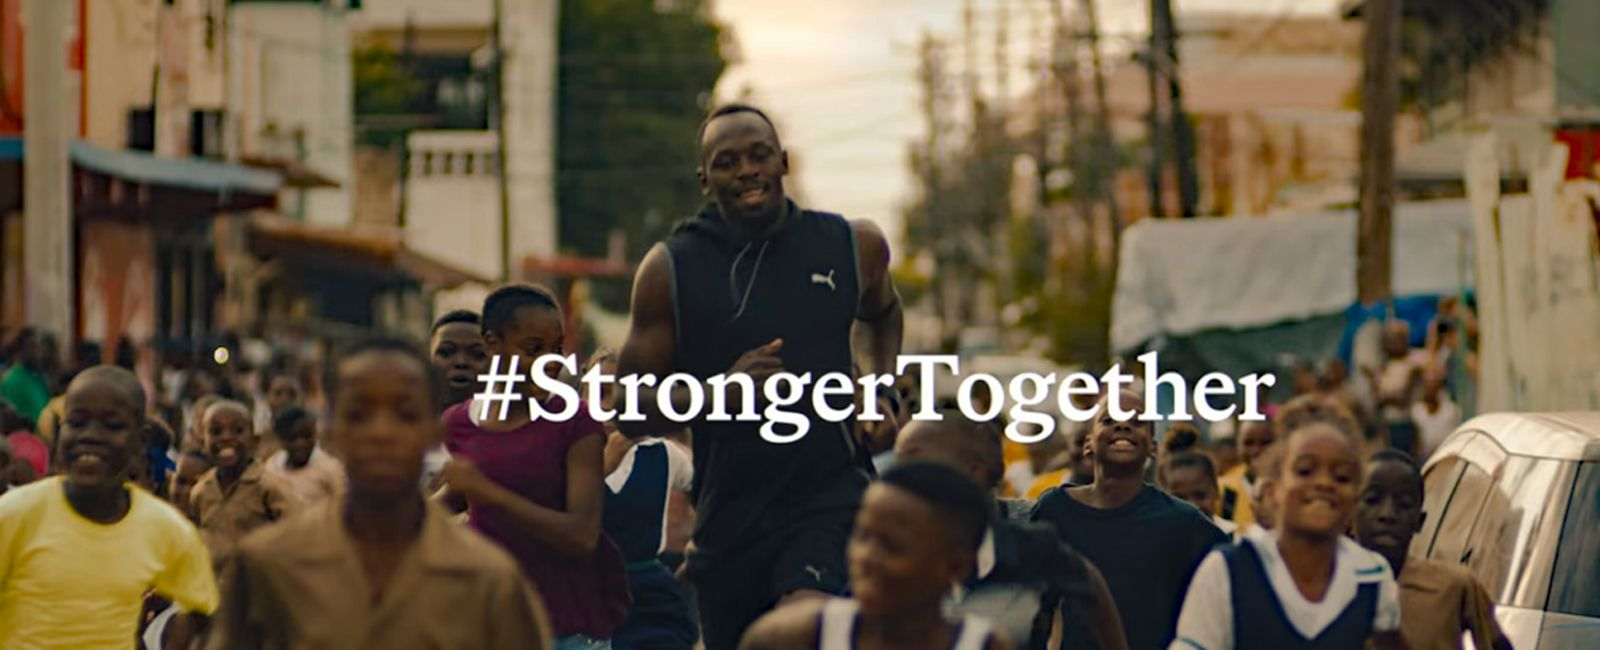 Stronger Together_USAIN BOLT_COI_Hulse and Durrell